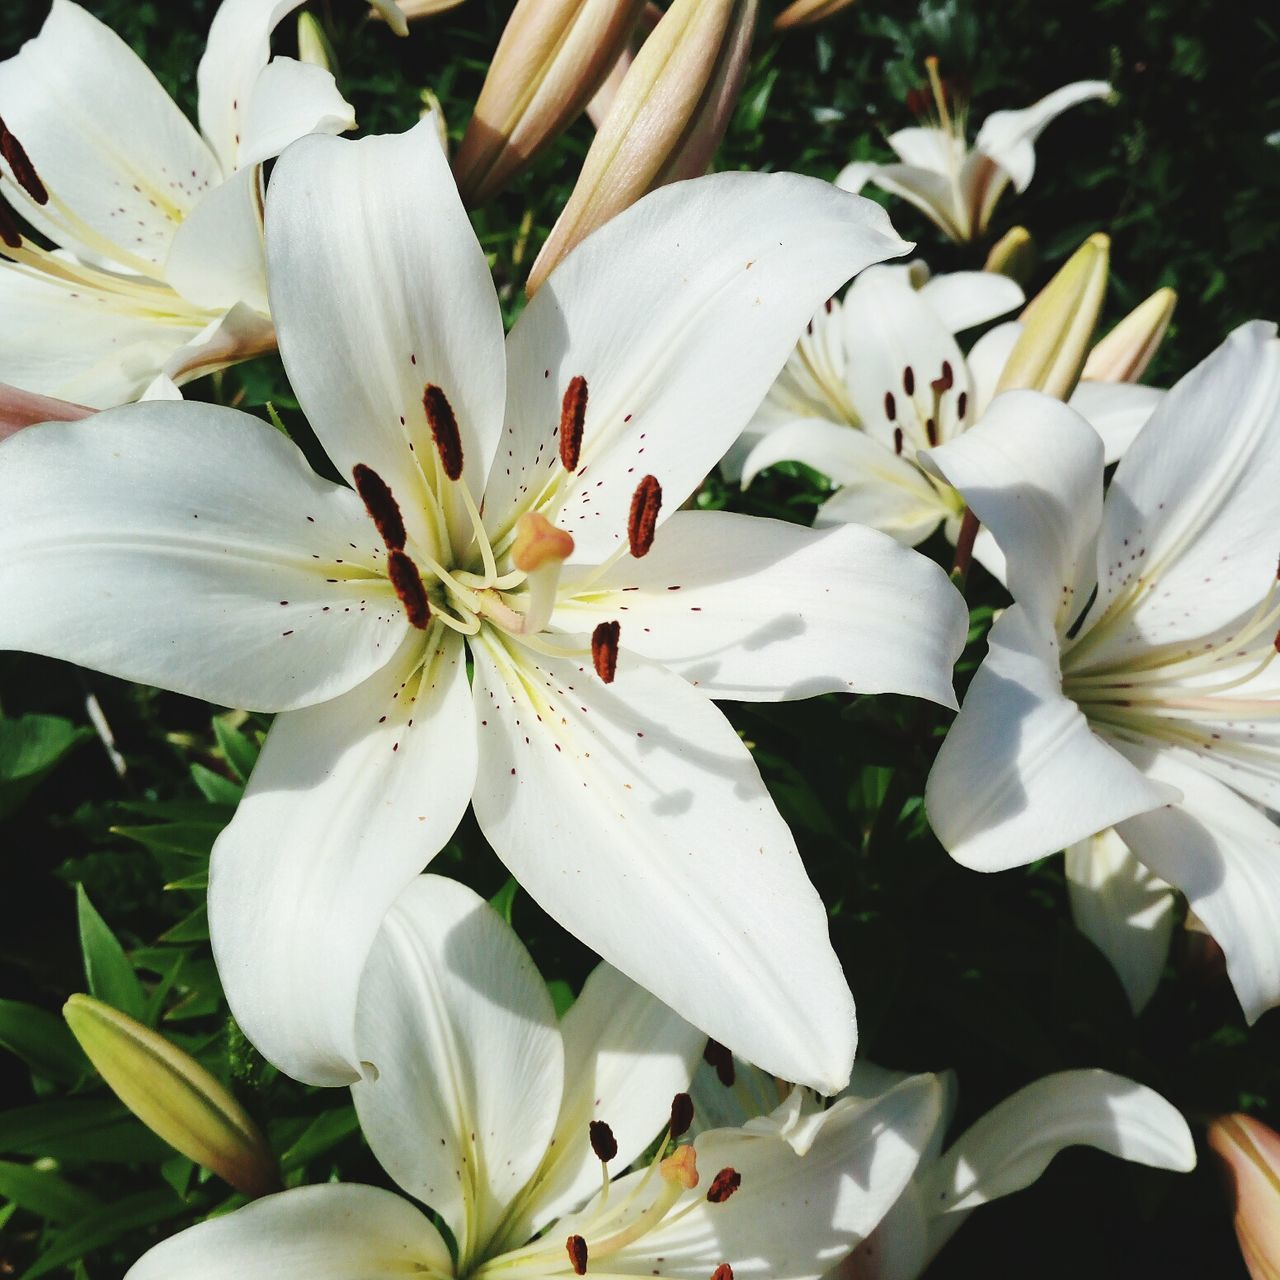 Flower Nature Beauty In Nature Flower Head Petal Fragility Growth No People Outdoors Day Freshness Close-up Springtime Plant Lilies